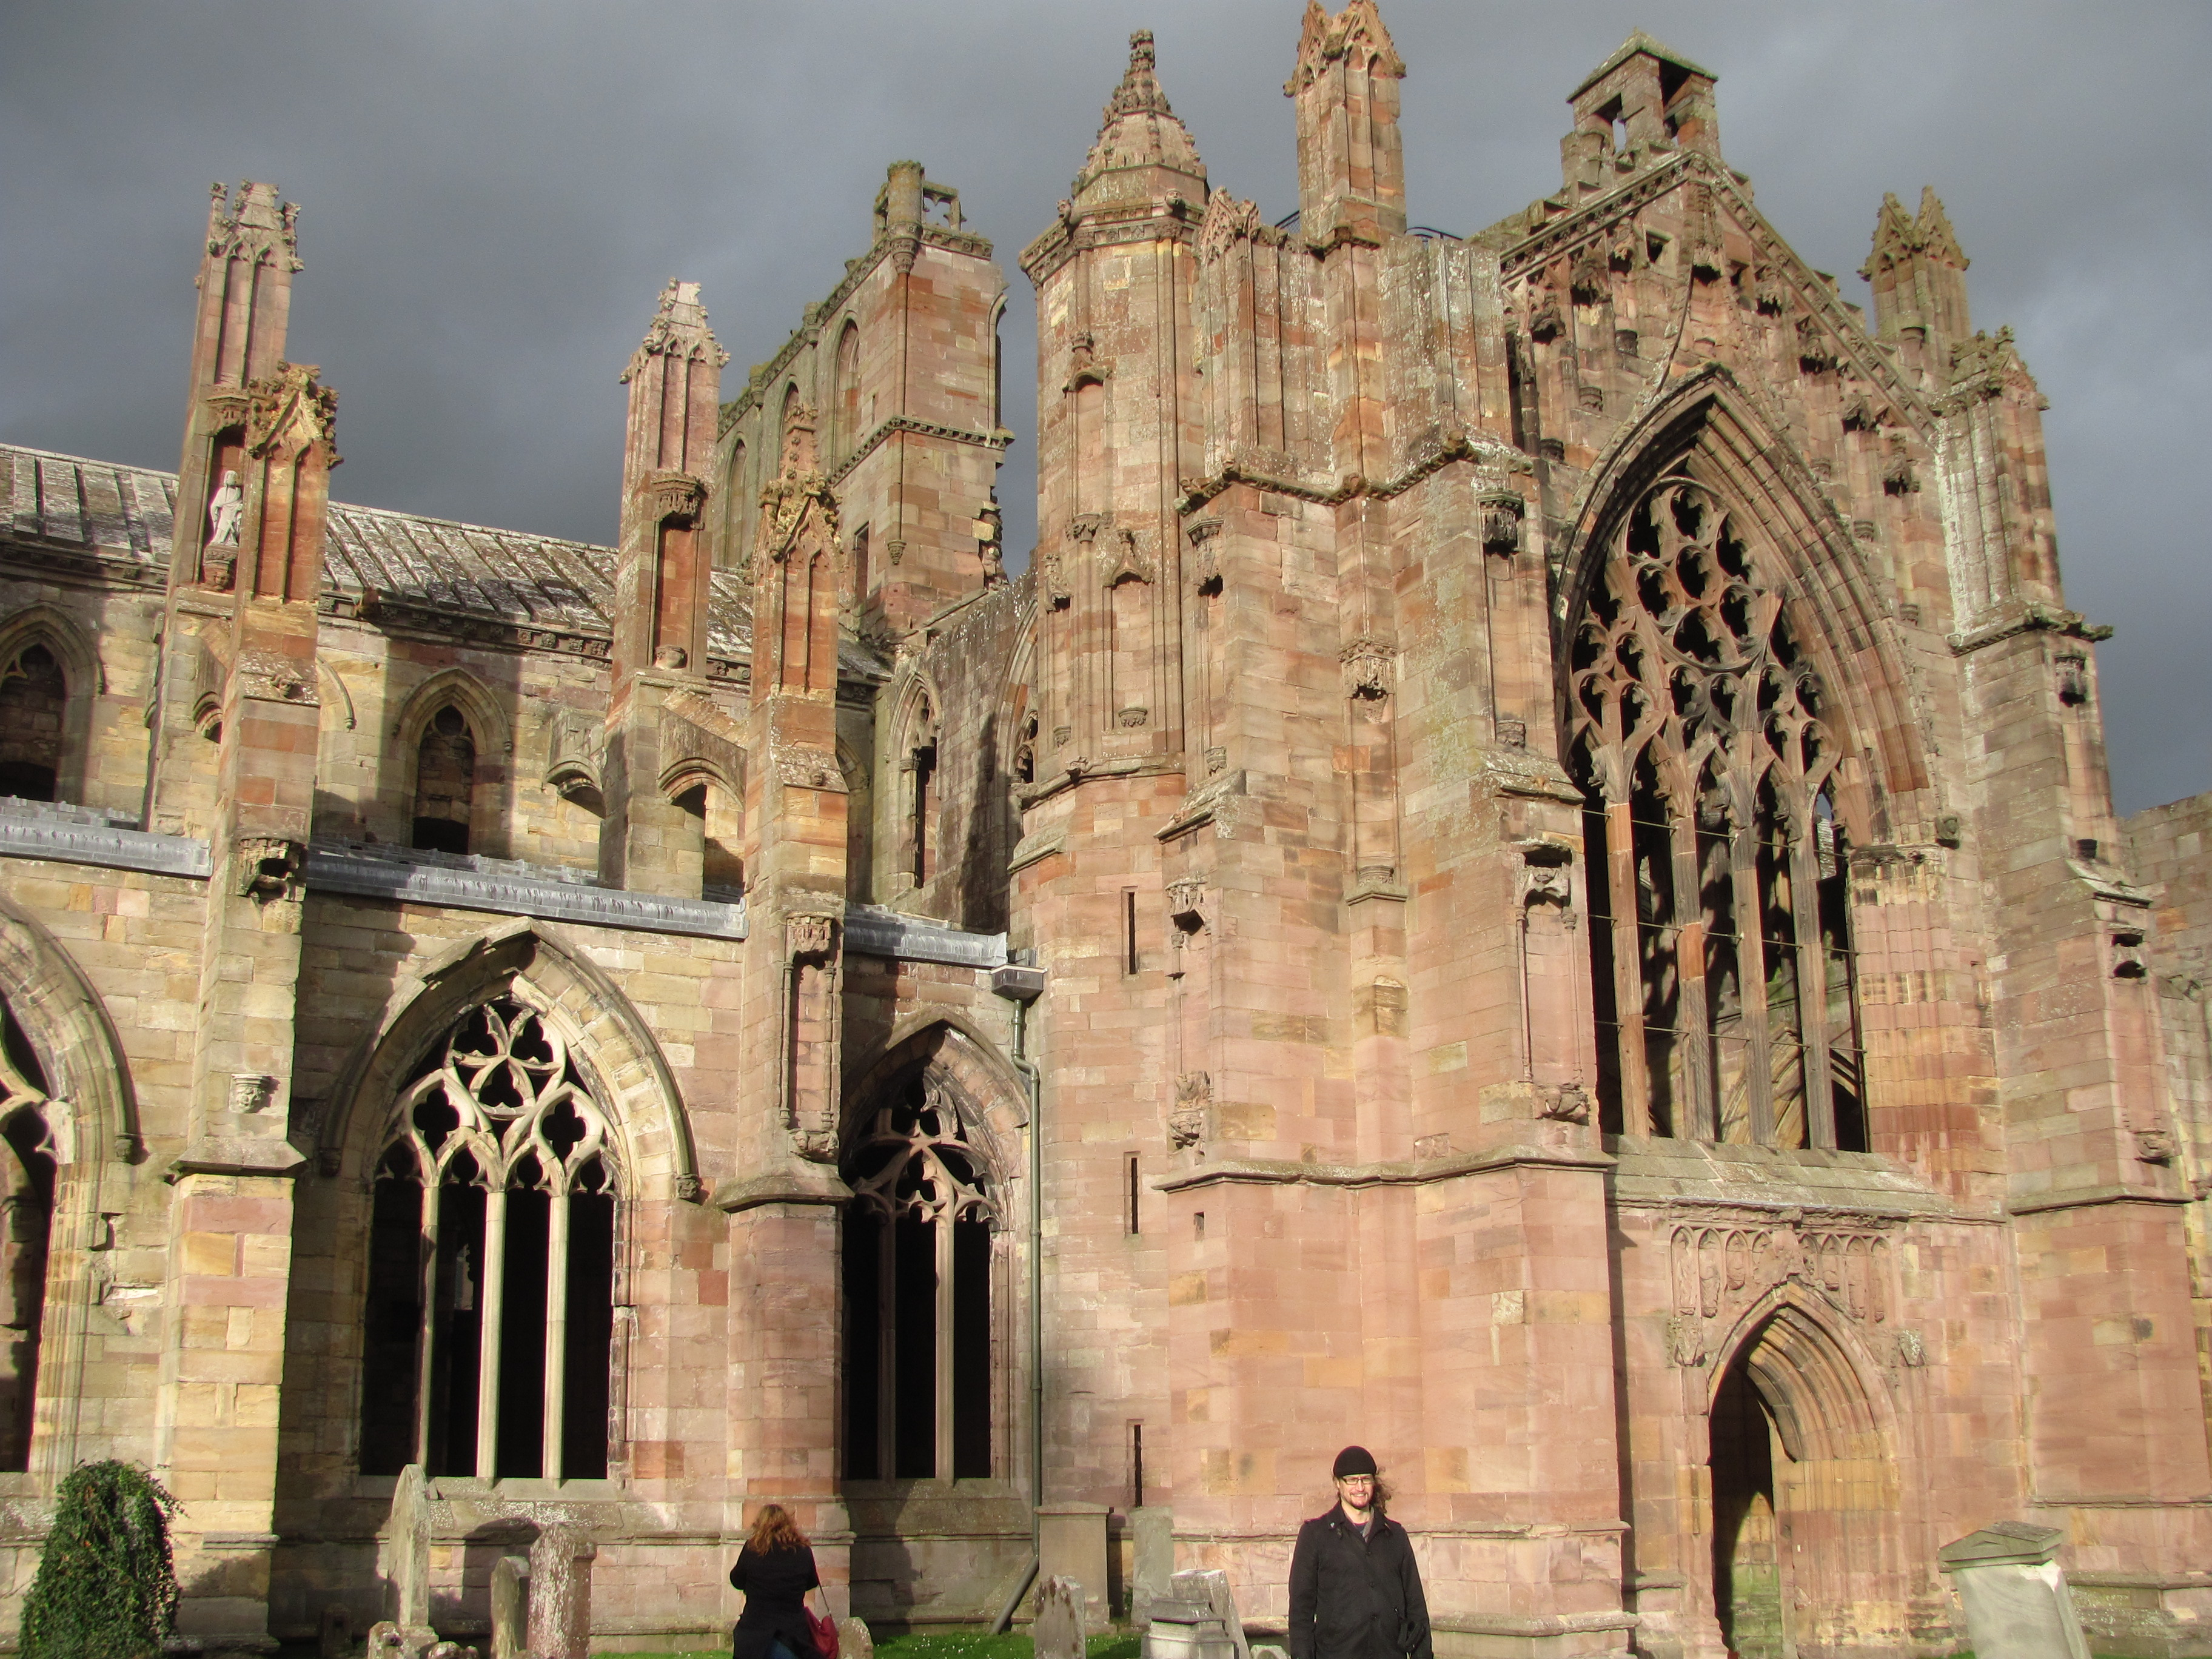 3648x2736 Gothic Architecture The Pocket Scroll